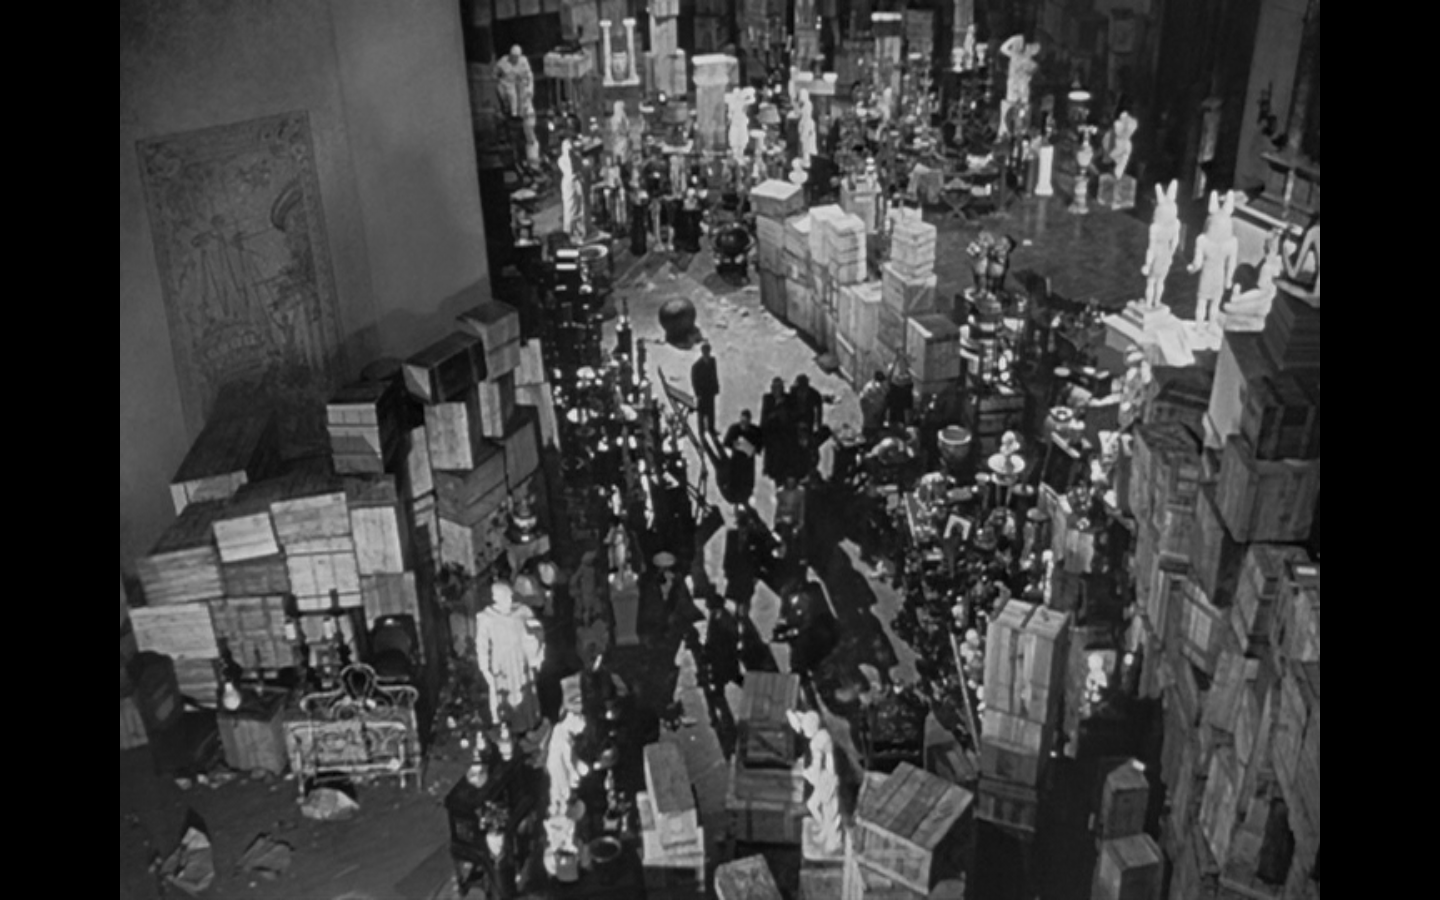 an analysis of a scene from citizen kane An analysis of the four minute boarding house scene in the film, citizen kane and what this scene reveals about the style of the director, orson welles.